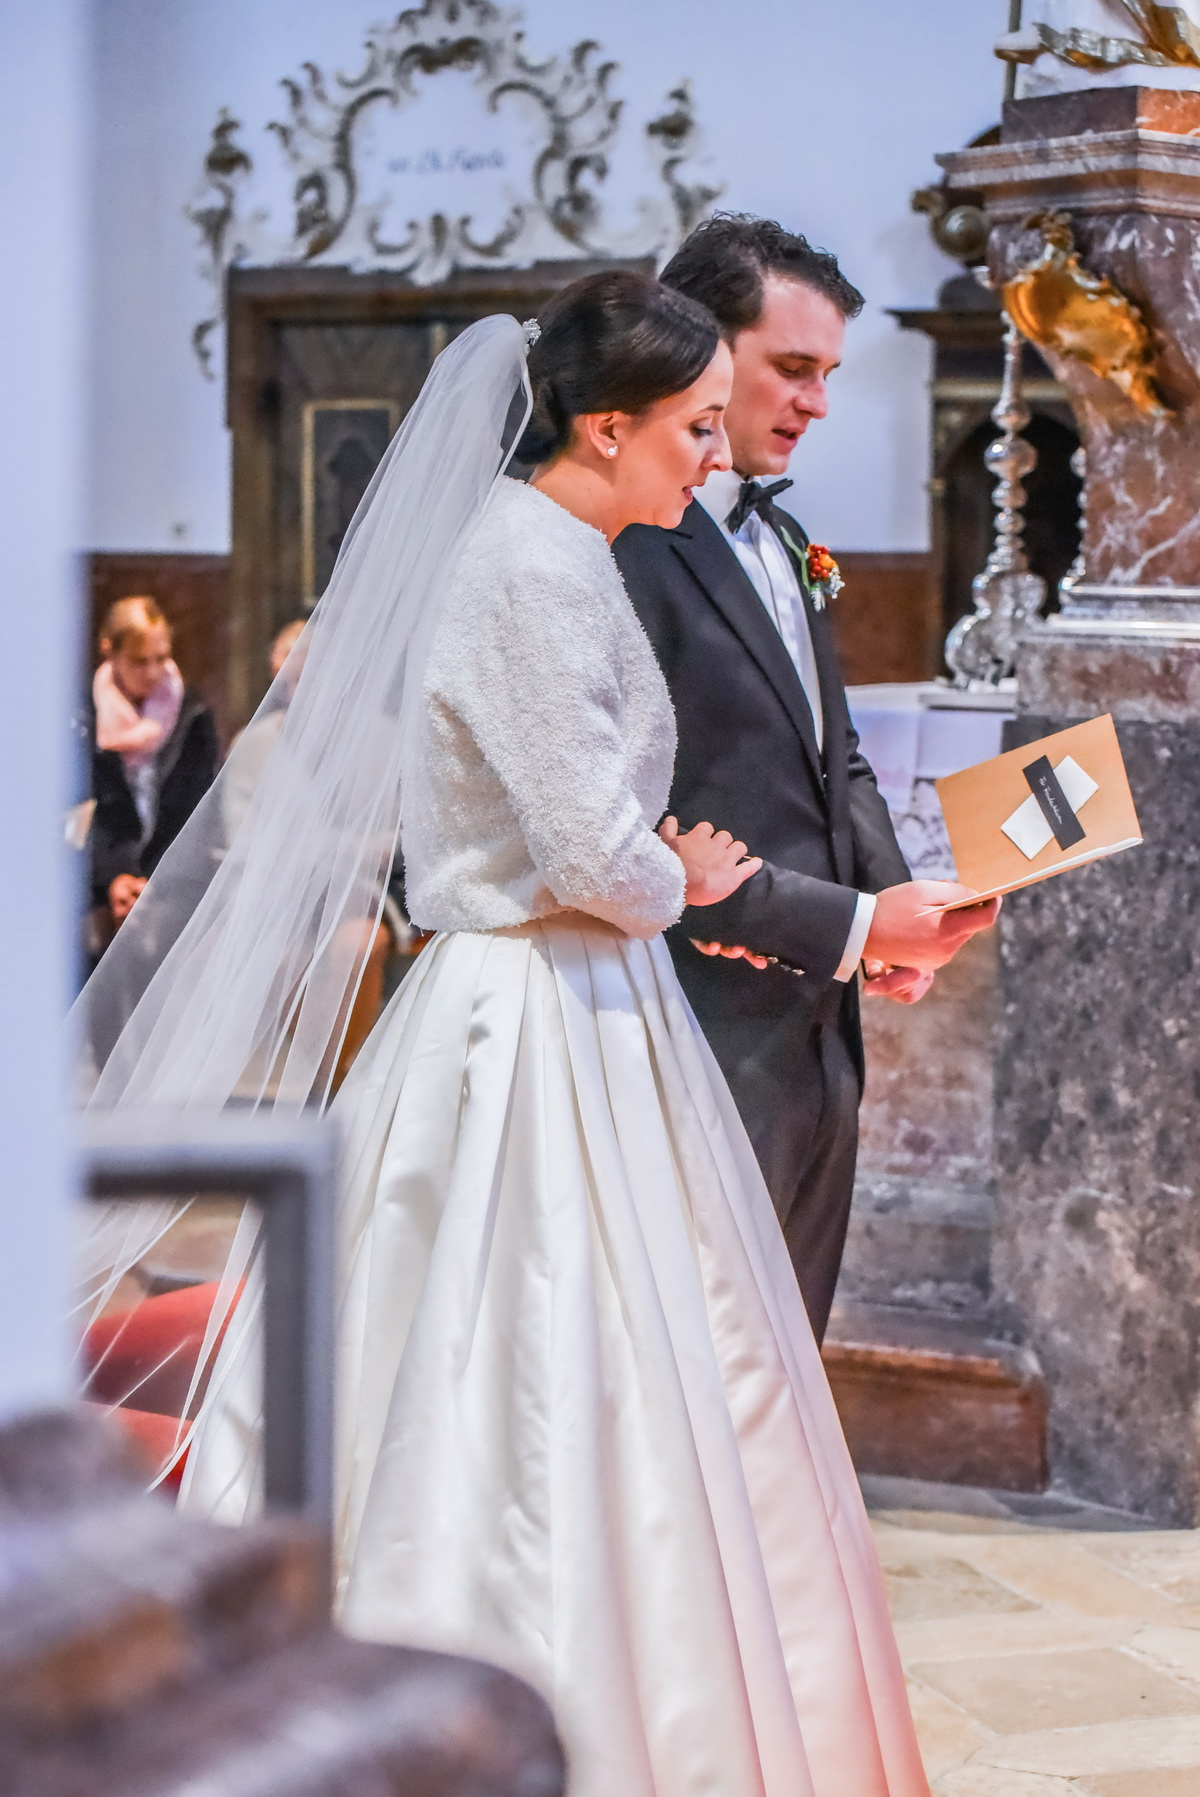 Wedding - Hochzeit - Claudia Sittig Photography - 036